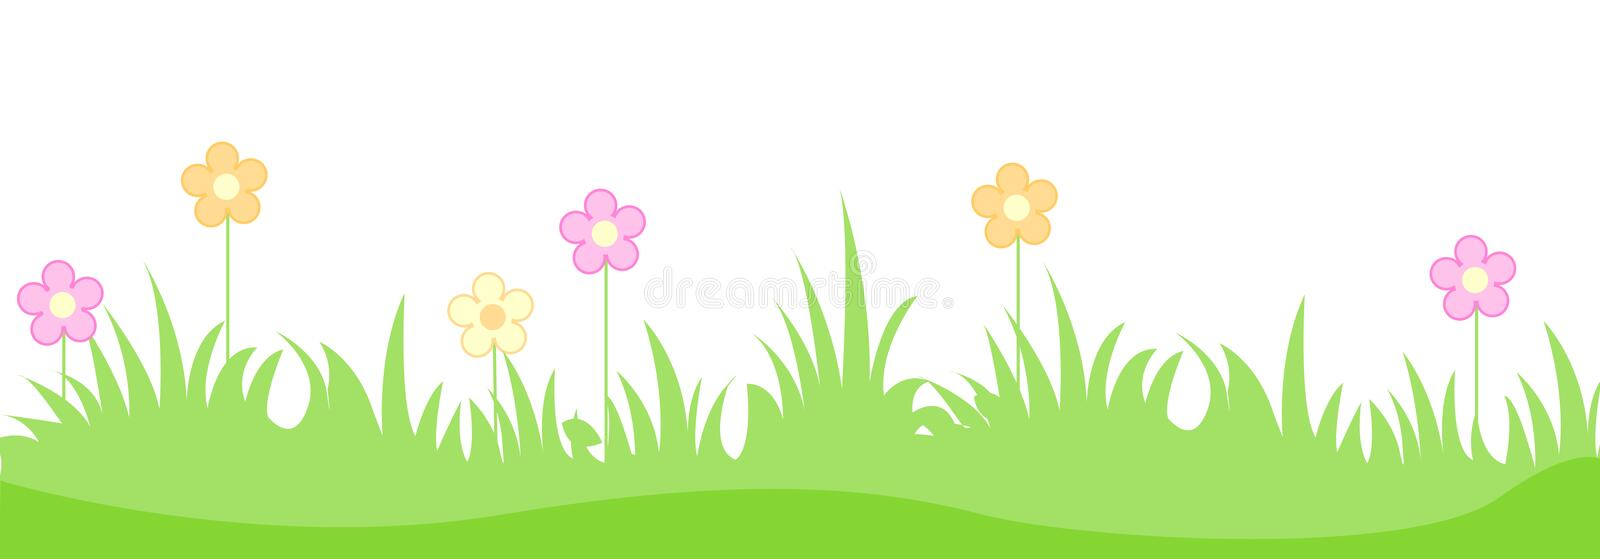 Grass with spring flowers. Green grass with cute spring flowers illustration isolated white background. Can use as web site header / Footer / banner